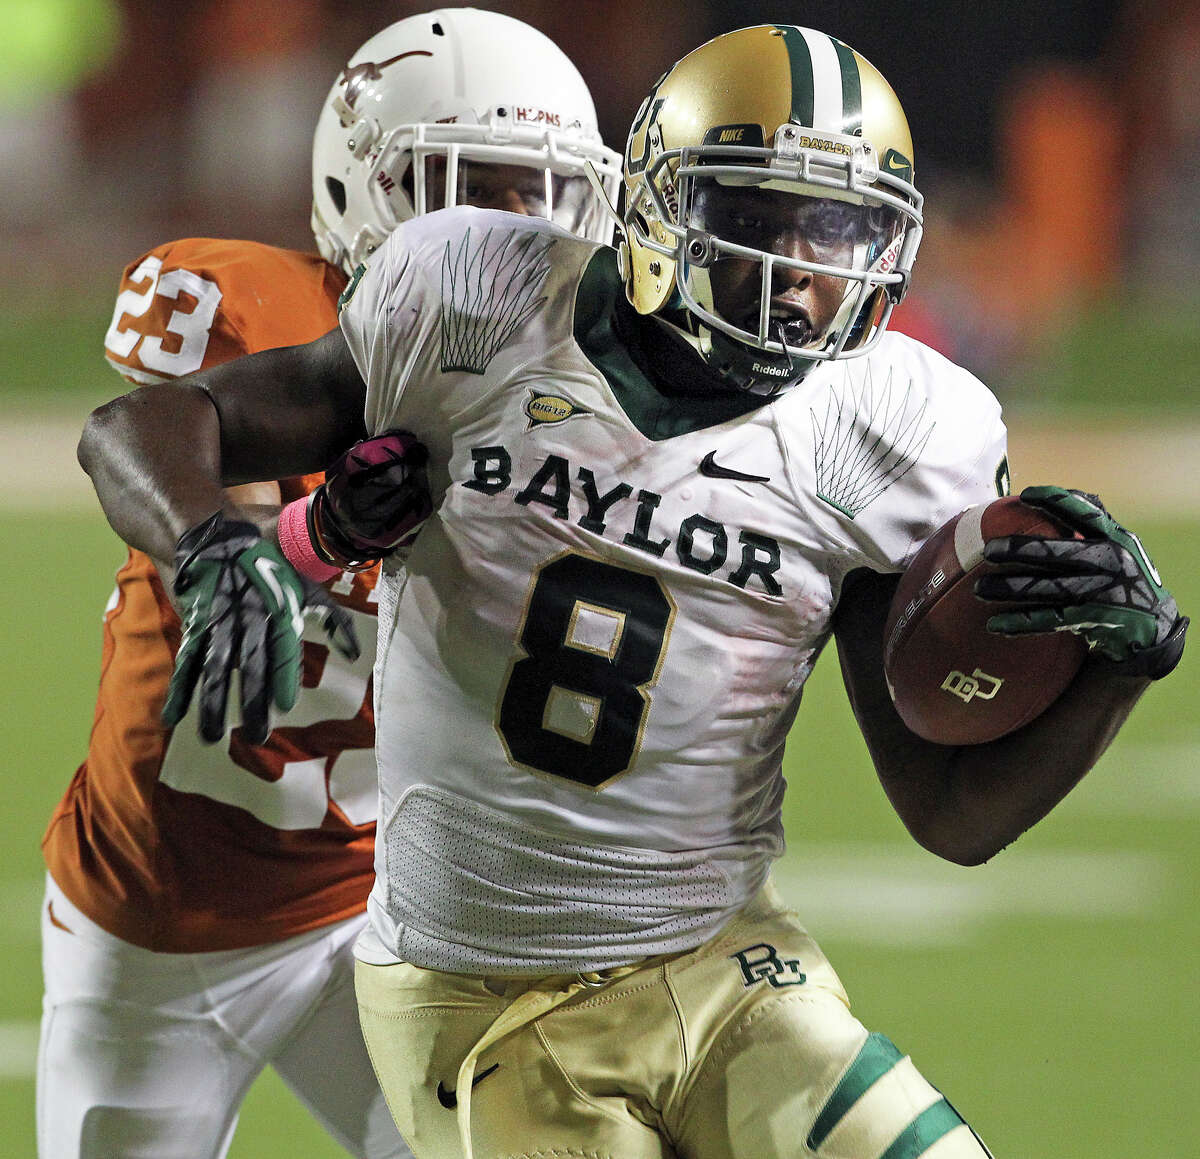 Bears running back Glasco Martin is slowed up by Carrington Byndom in the second half as Texas hosts Baylor at Darrell K Royal - Texas Memorial Stadium Stadium on Oct. 20, 2012.